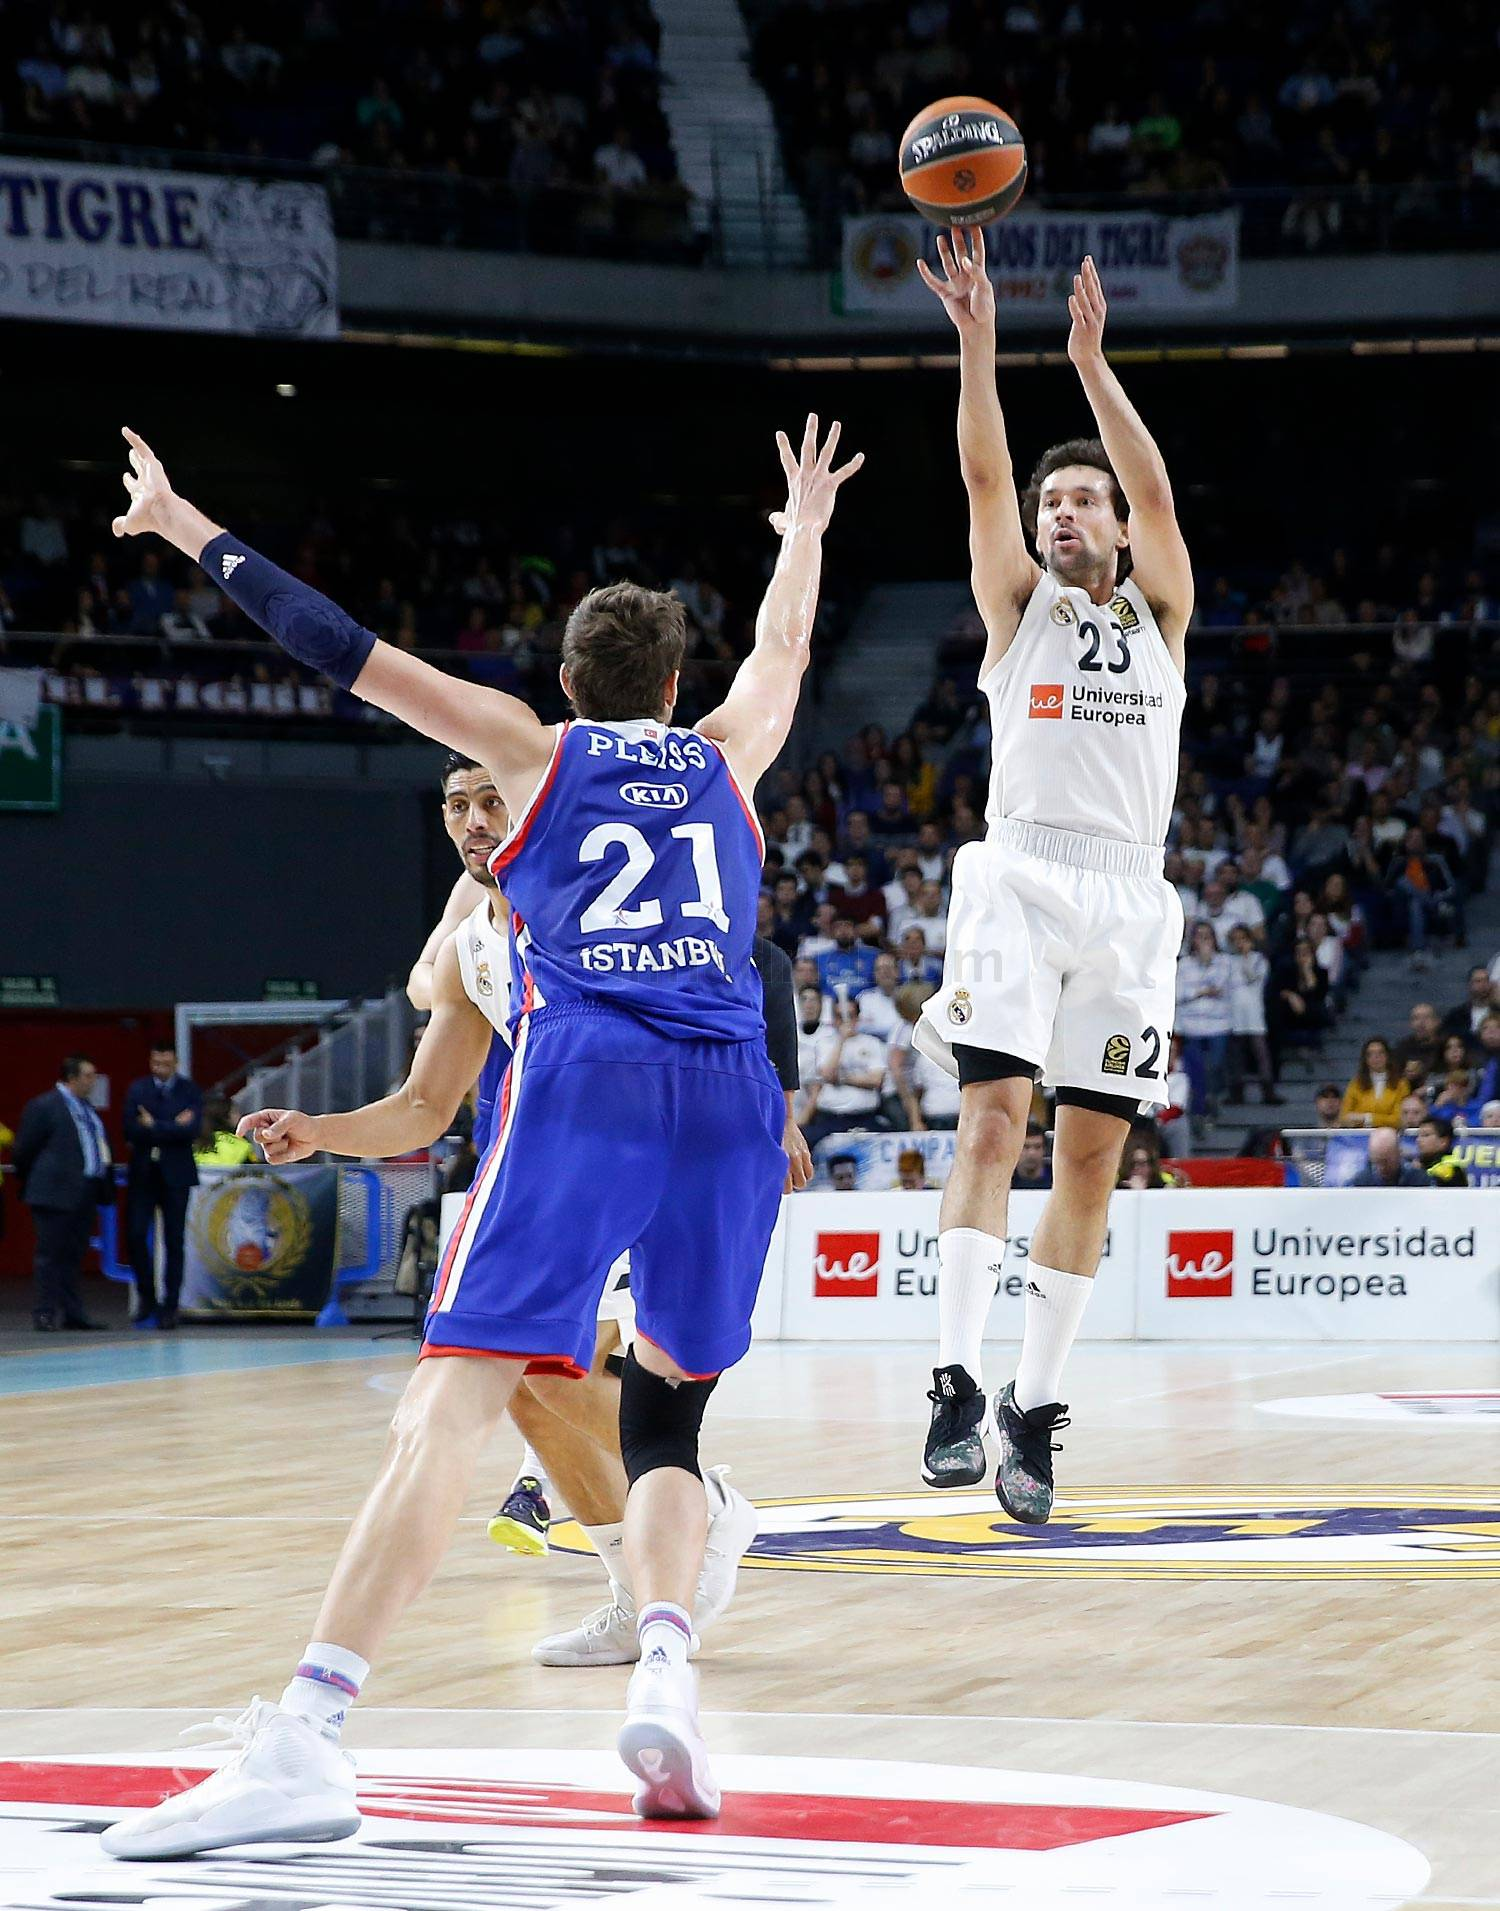 Real Madrid - Real Madrid - Anadolu Efes - 24-01-2019